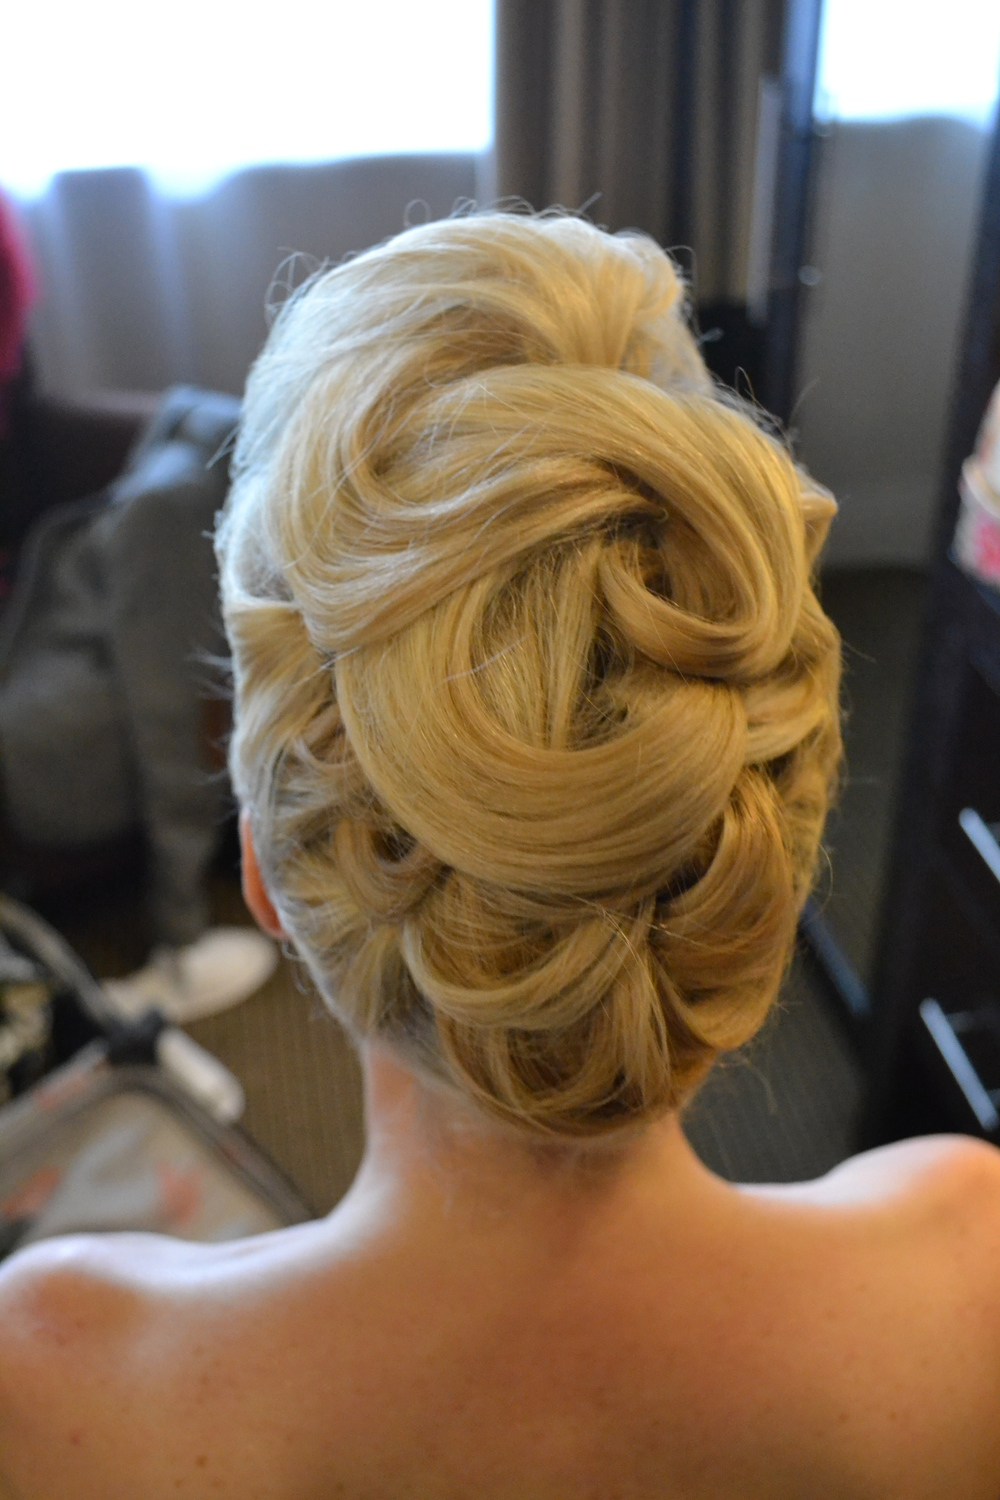 Sculpted hair up